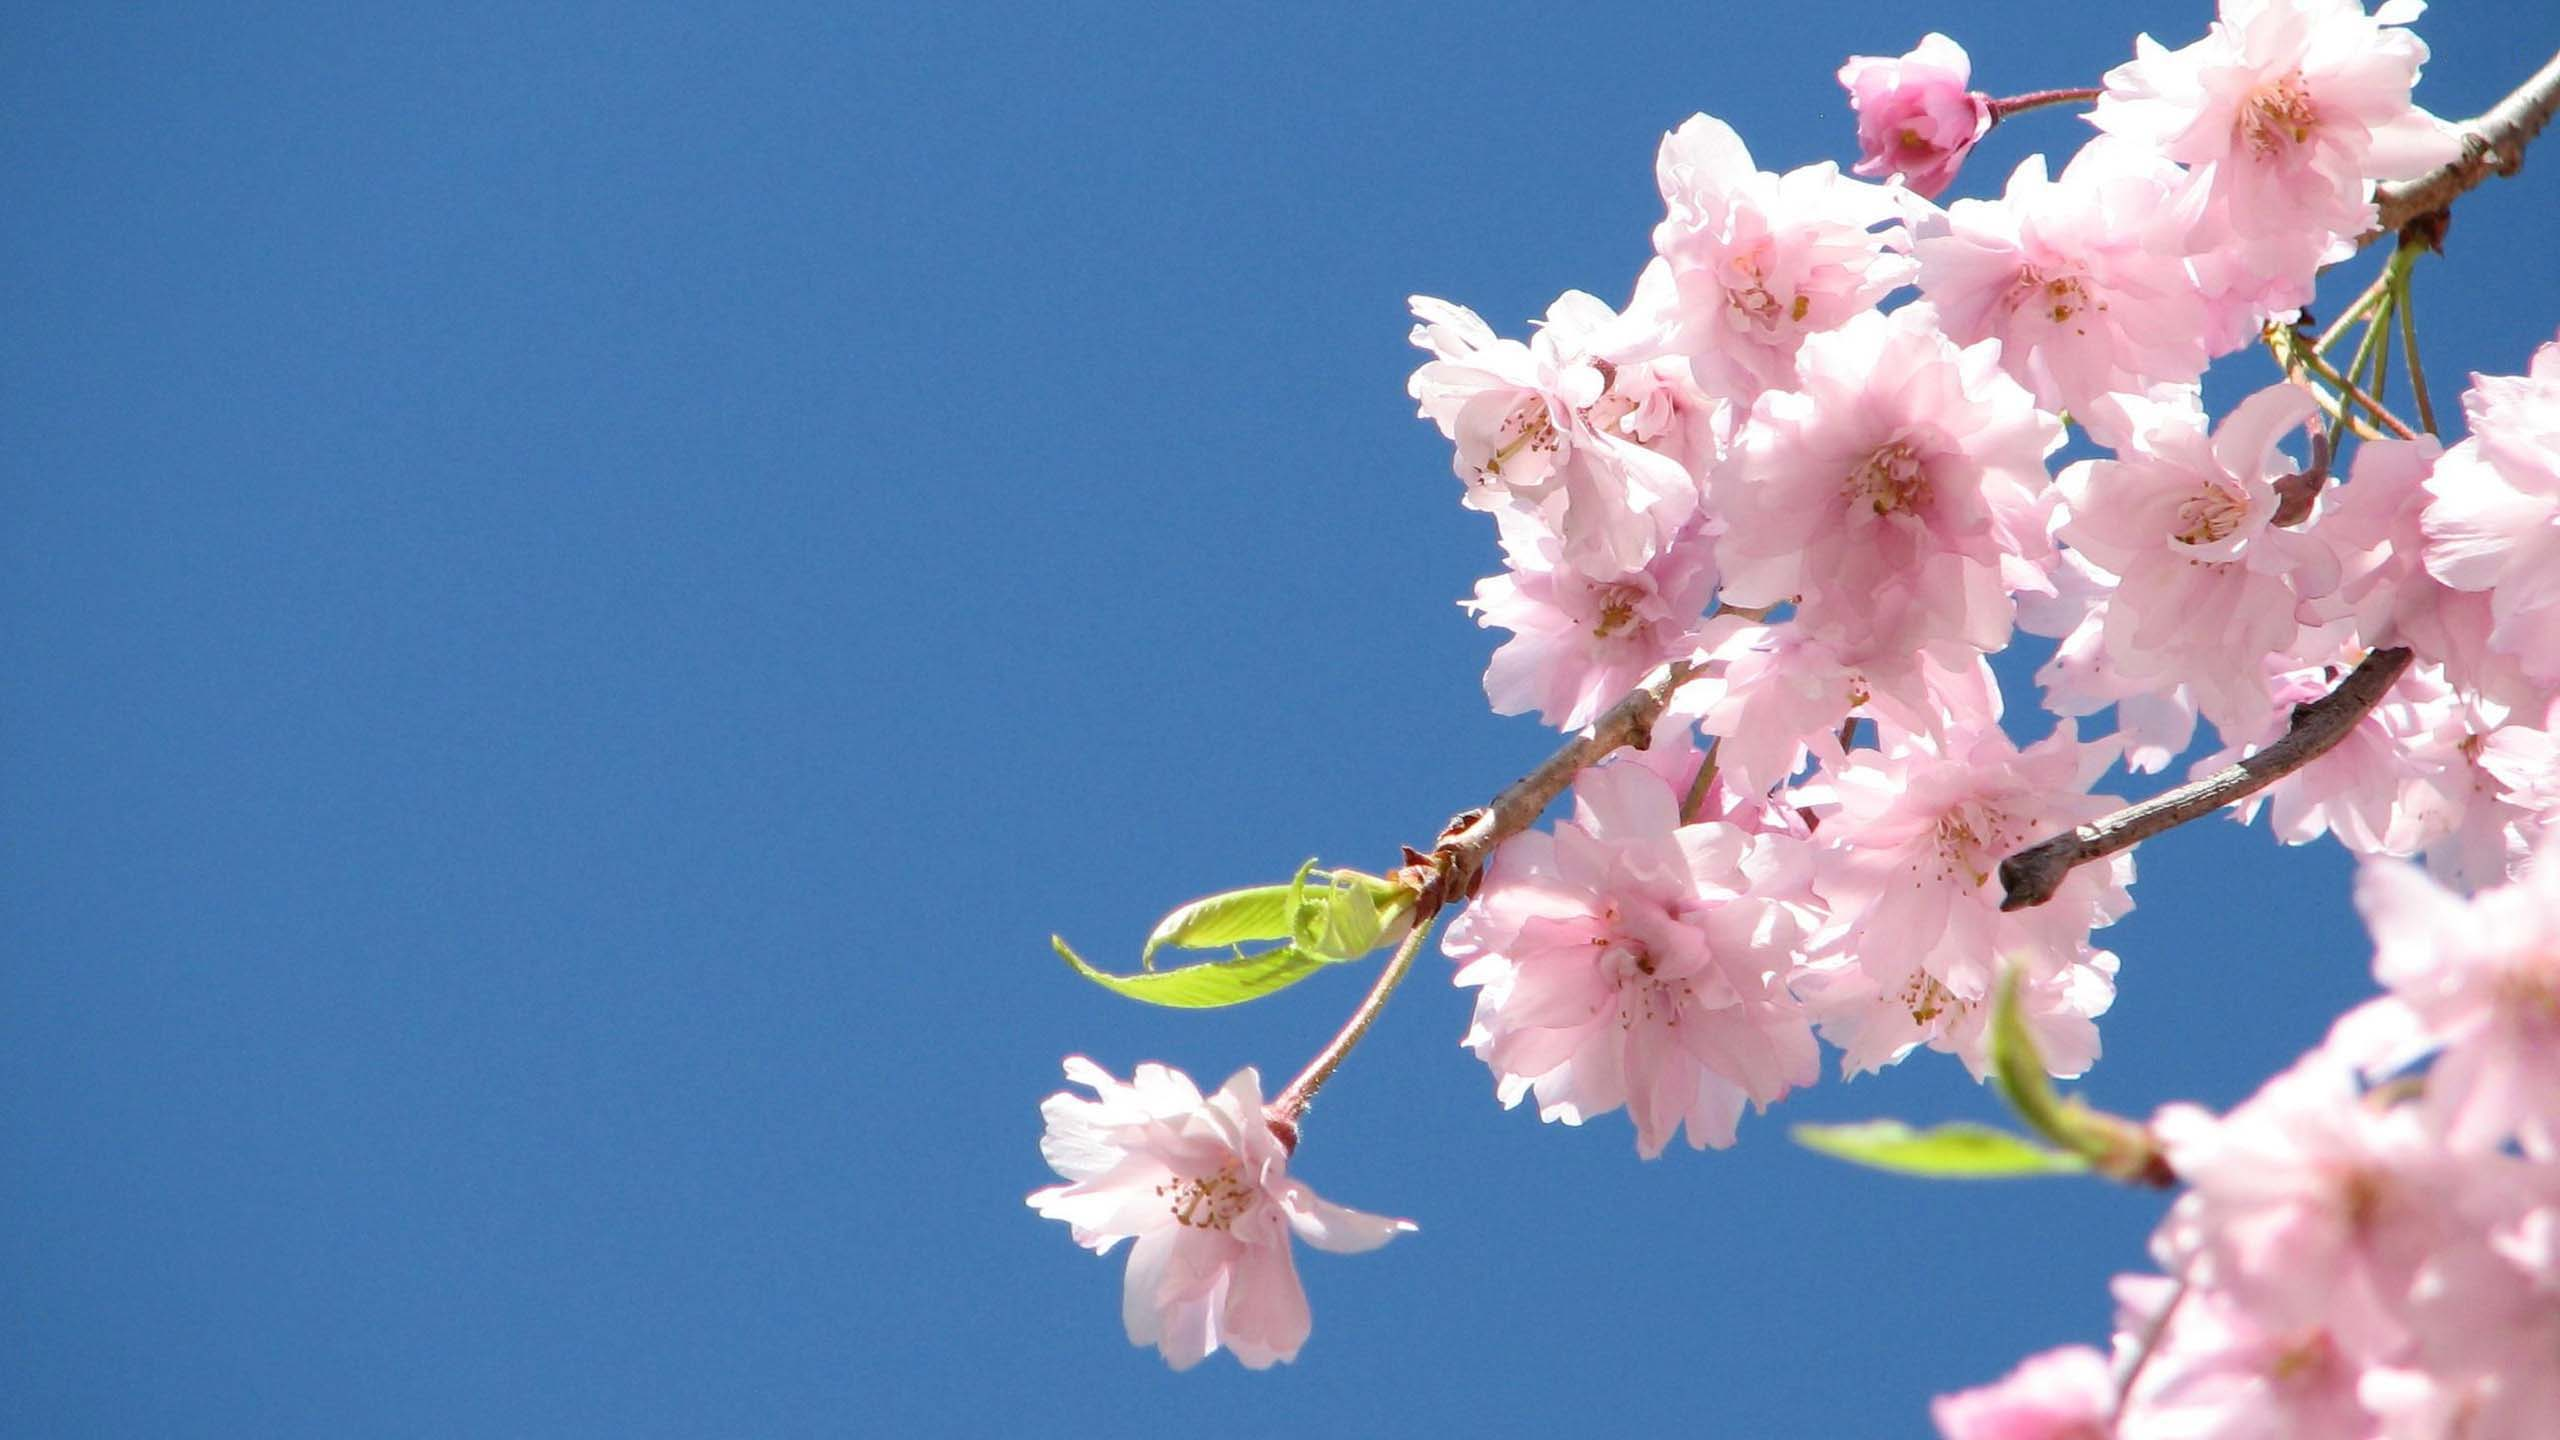 Happy First Day of Spring Cherry Blossoms 2560x1440 Flower 2560x1440